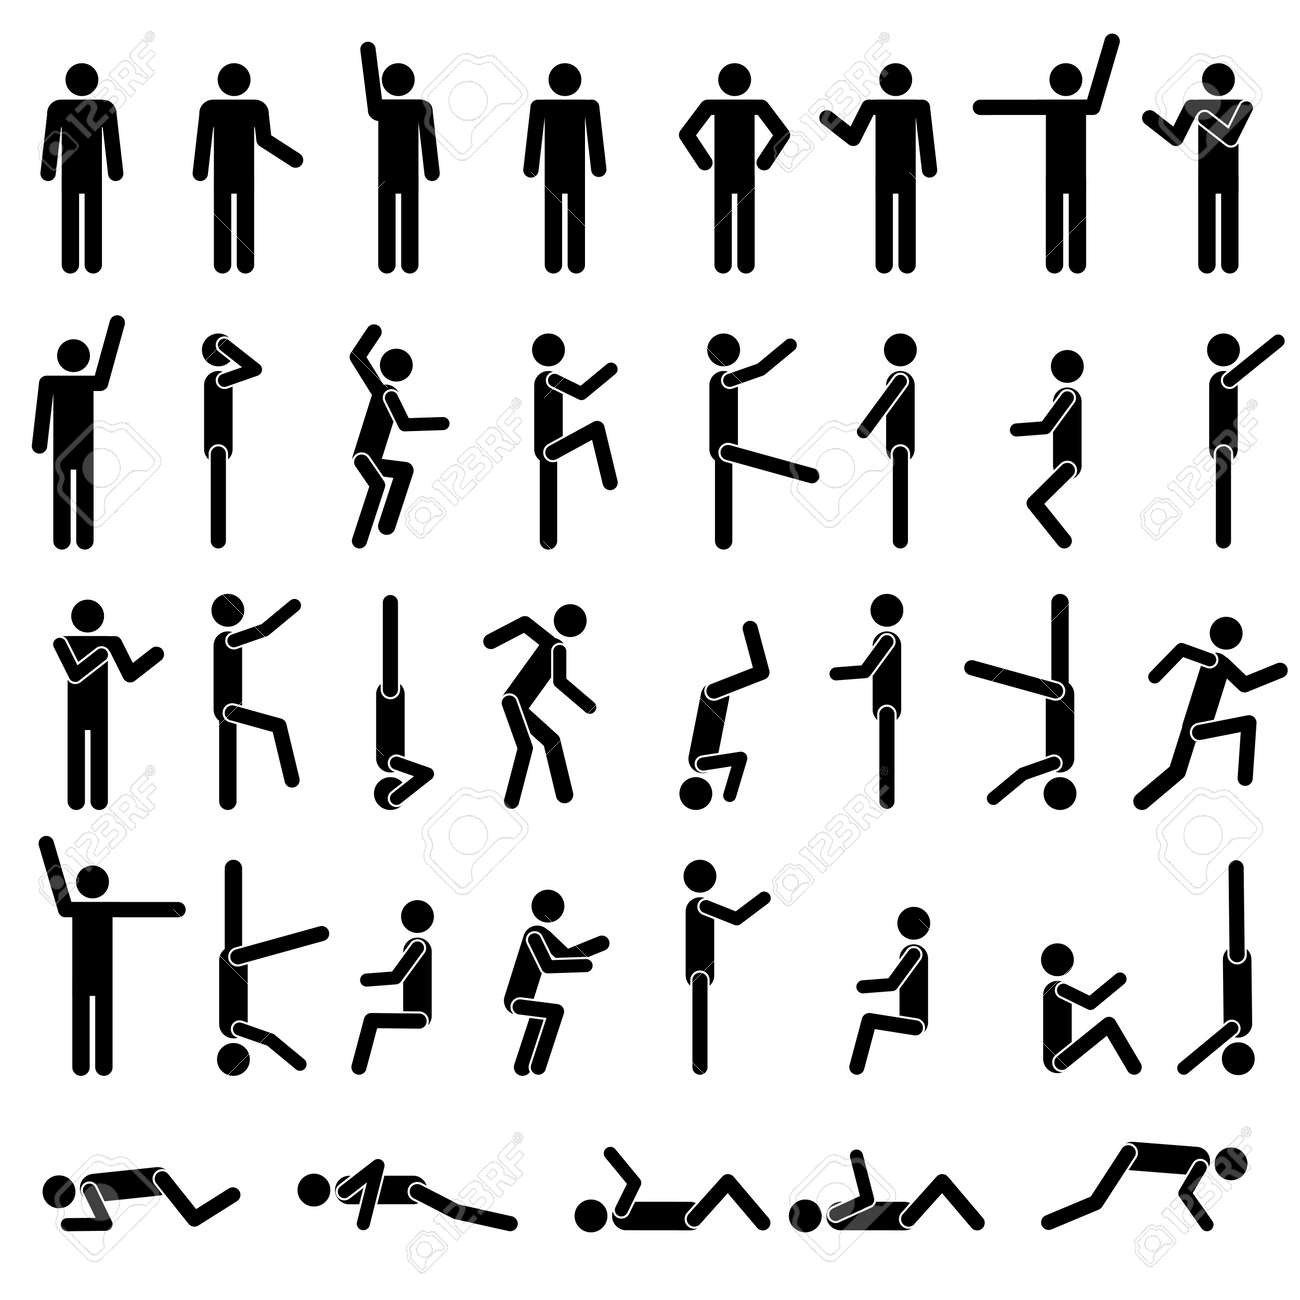 People in different poses vector. Icon Sign Symbol Pictogram Stock Vector - 12919333